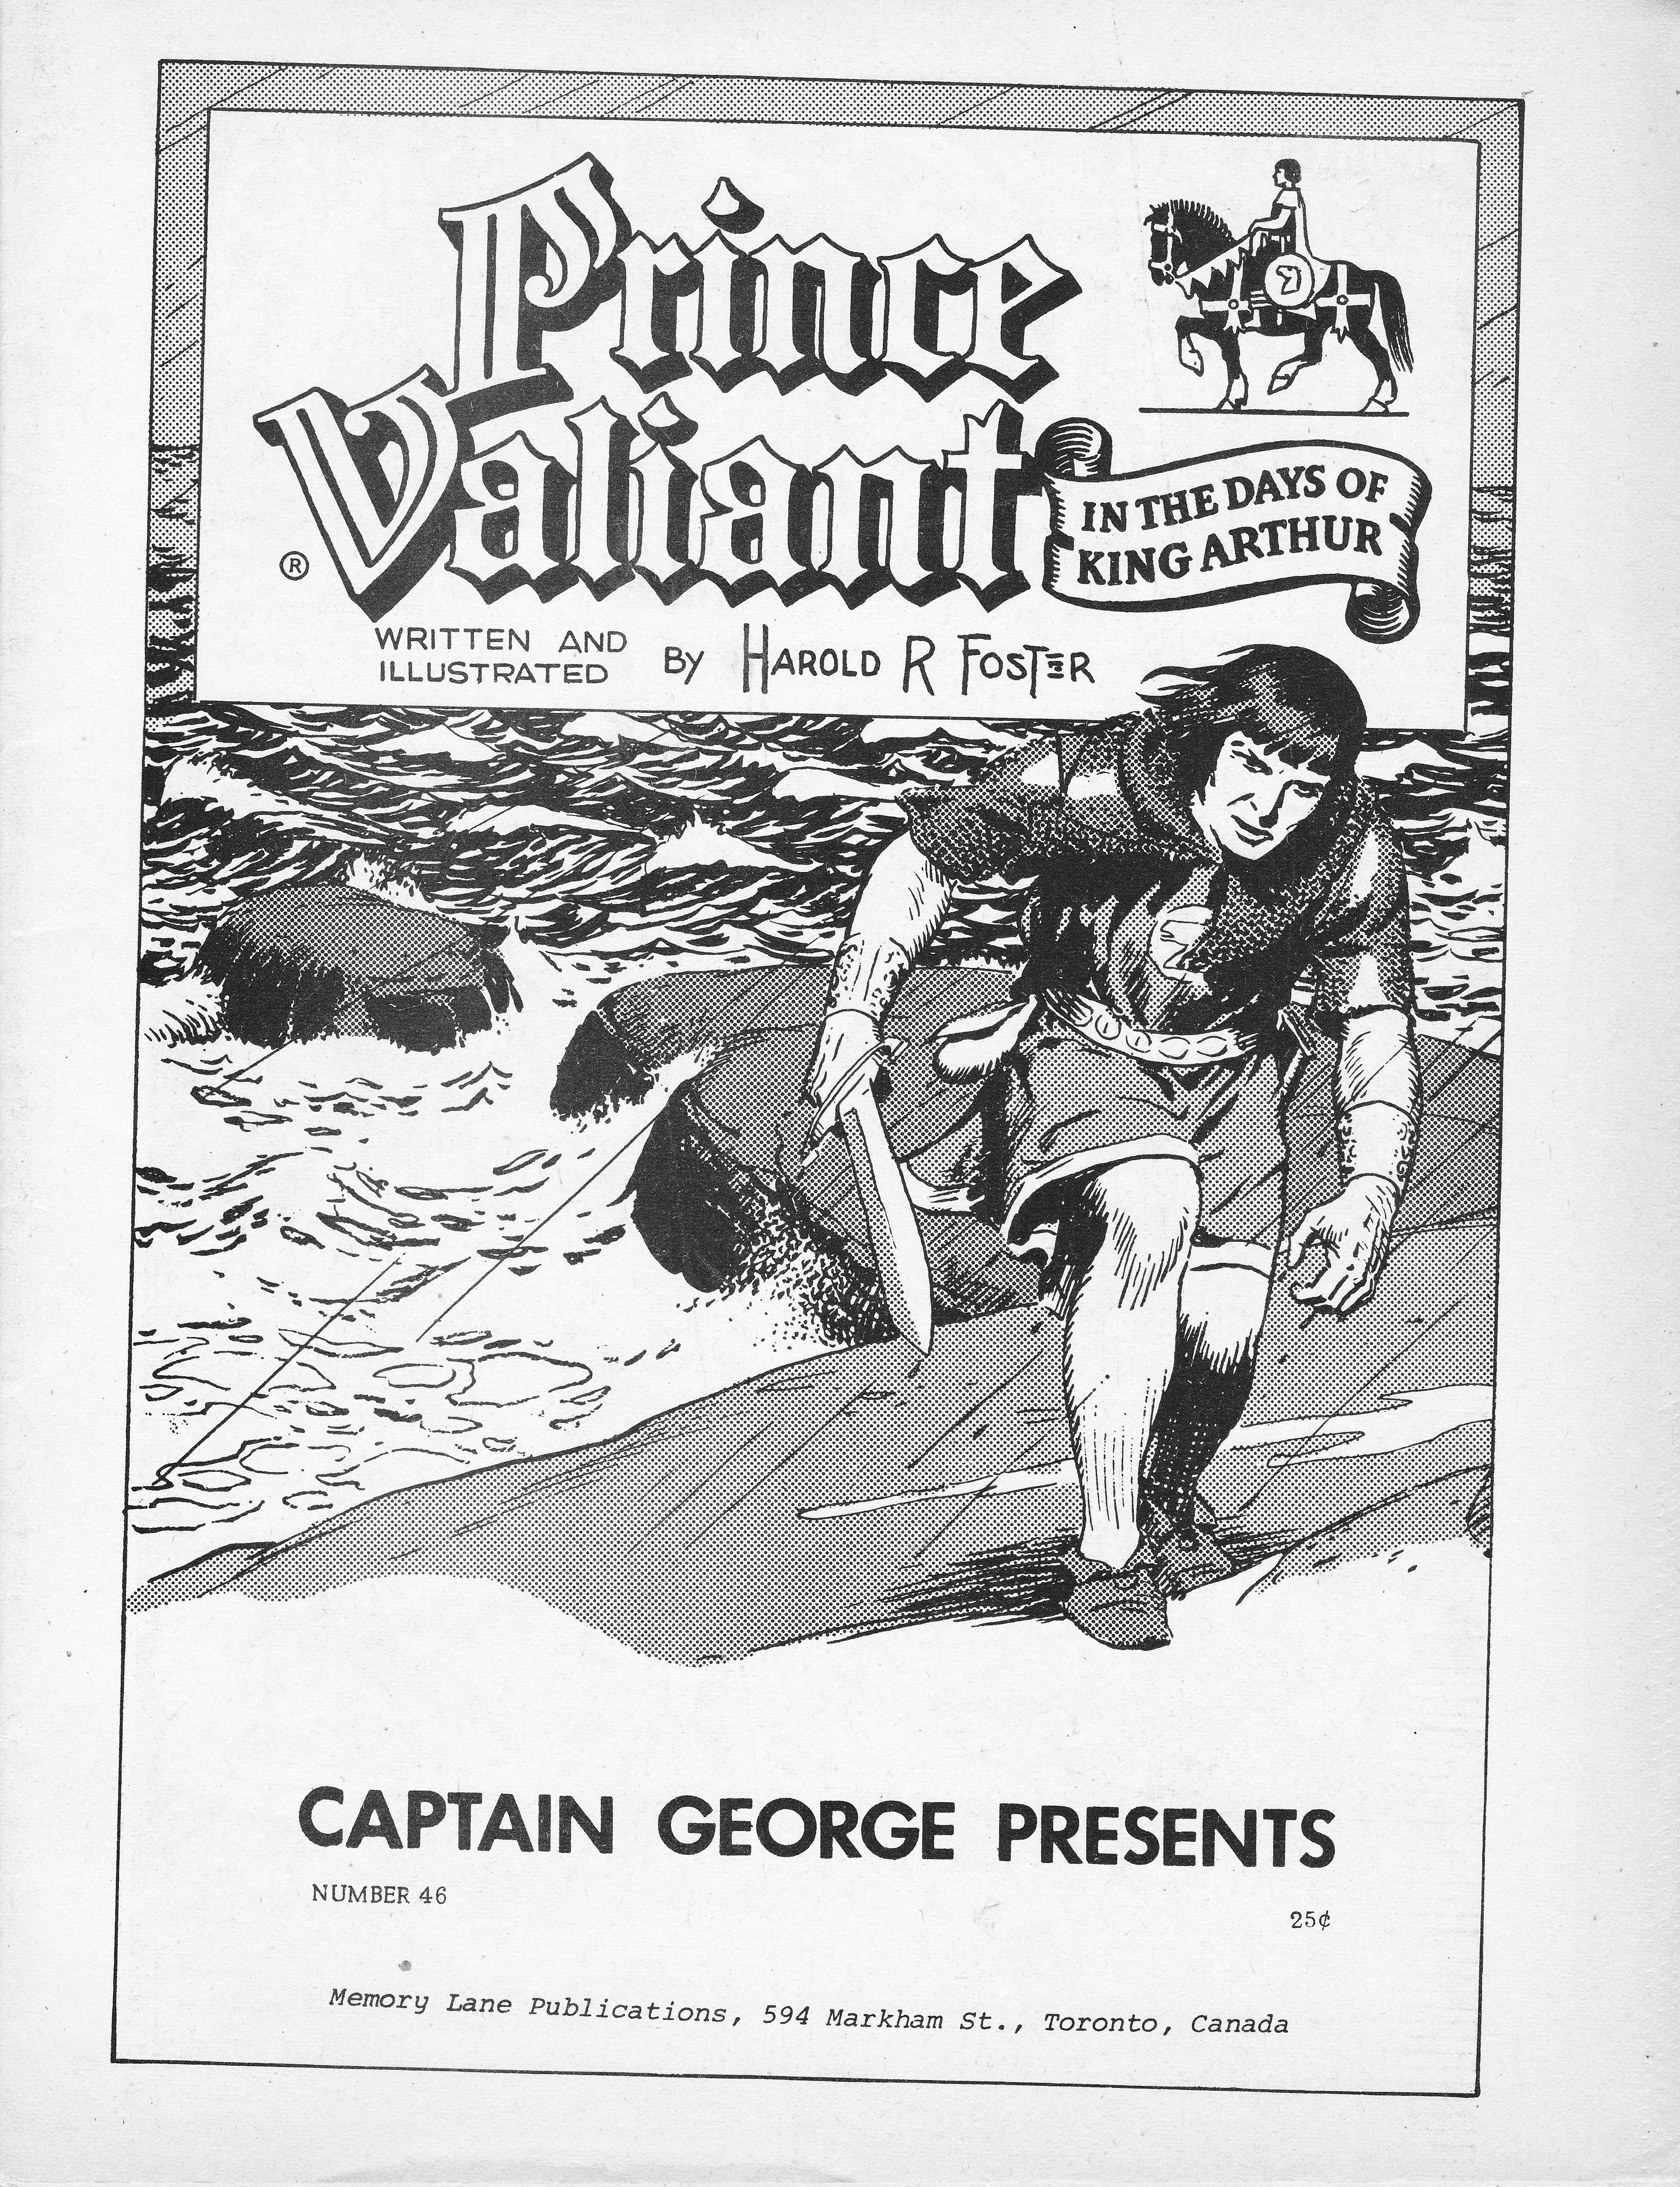 C:\Users\Robert\Documents\CARTOONING ILLUSTRATION ANIMATION\IMAGE COVER PERIODICAL\Capt. George Presents... 46, no date, fc.jpg